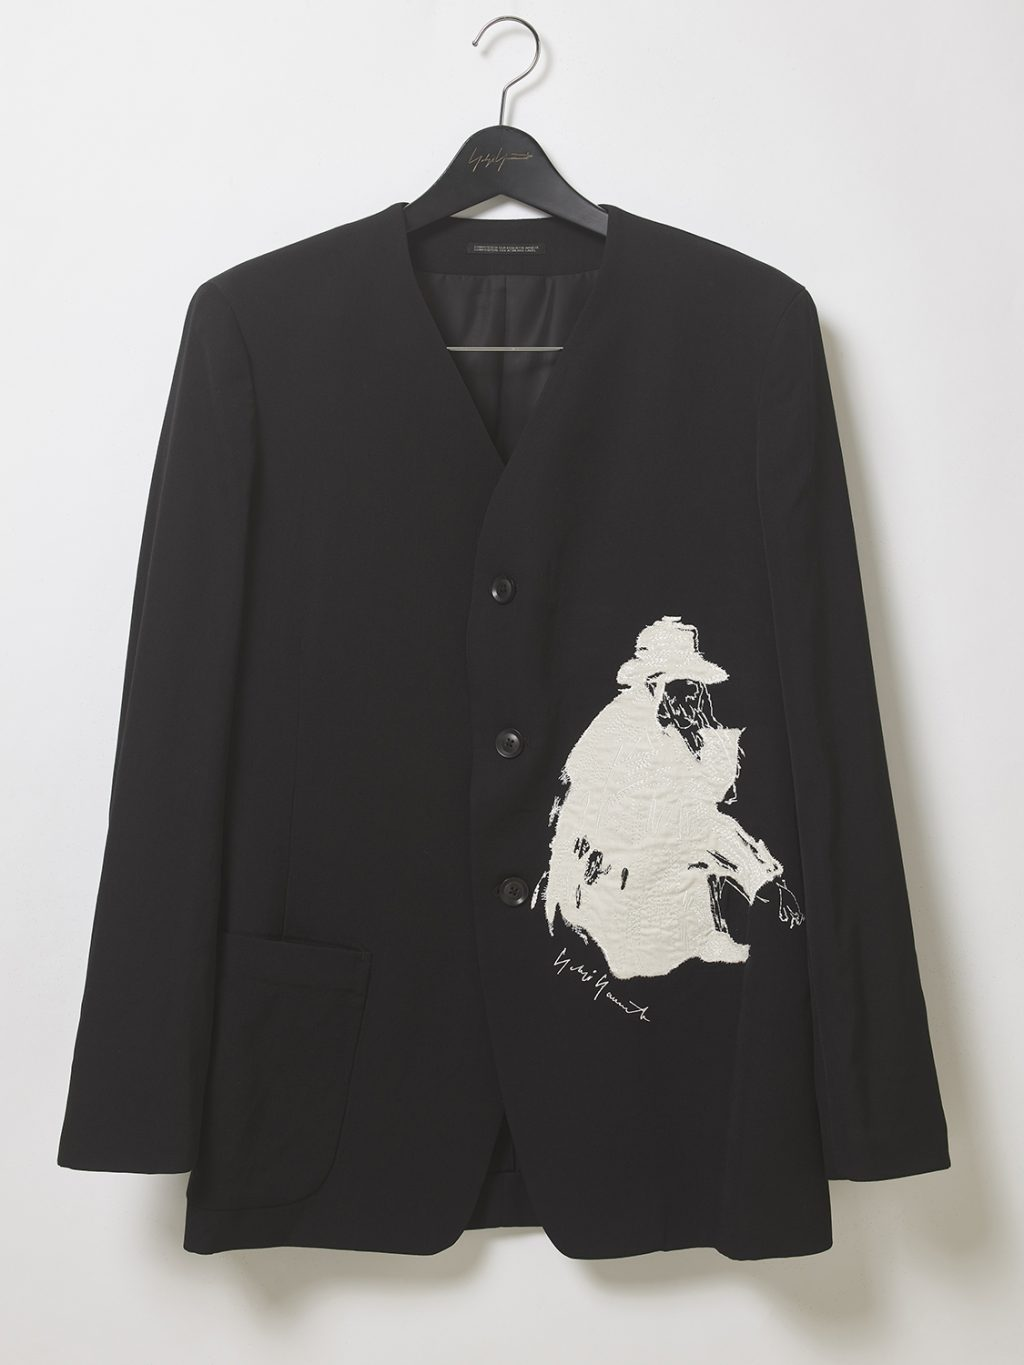 Yohji Yamamoto releasing ink painting inspired embroidery collection.